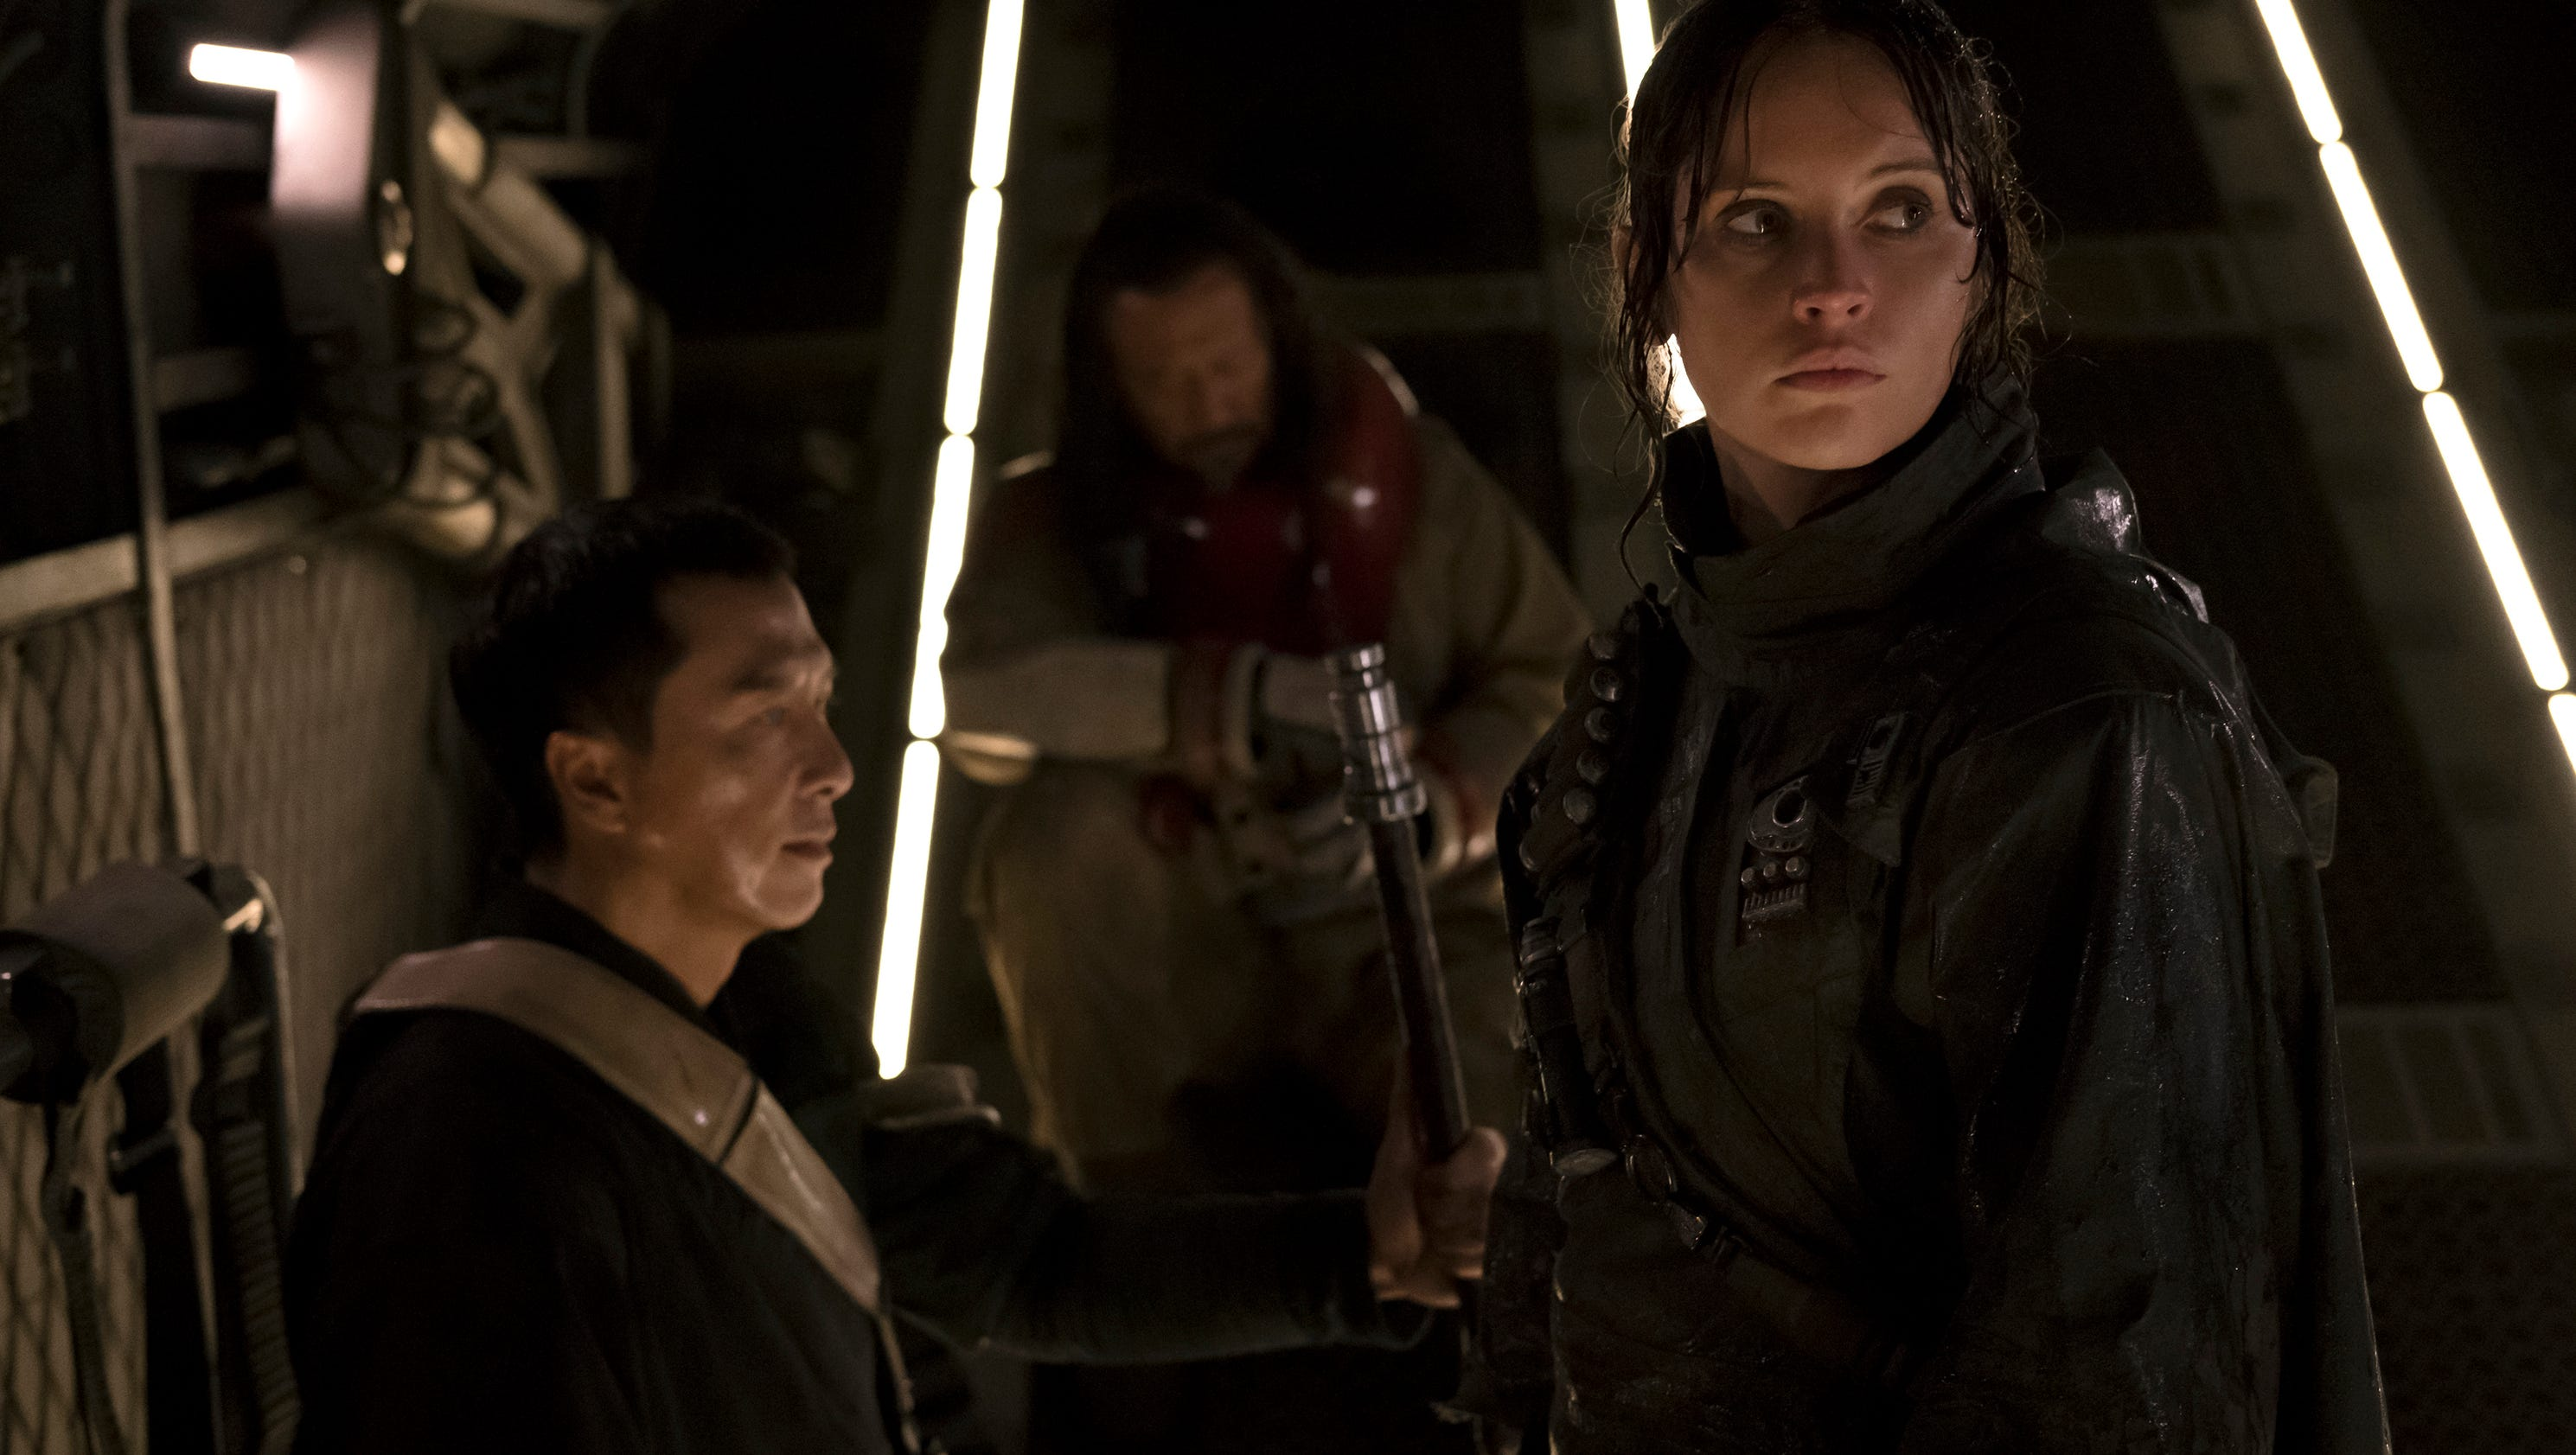 Review: 'Rogue One' struggles with ties to 'Star Wars' past